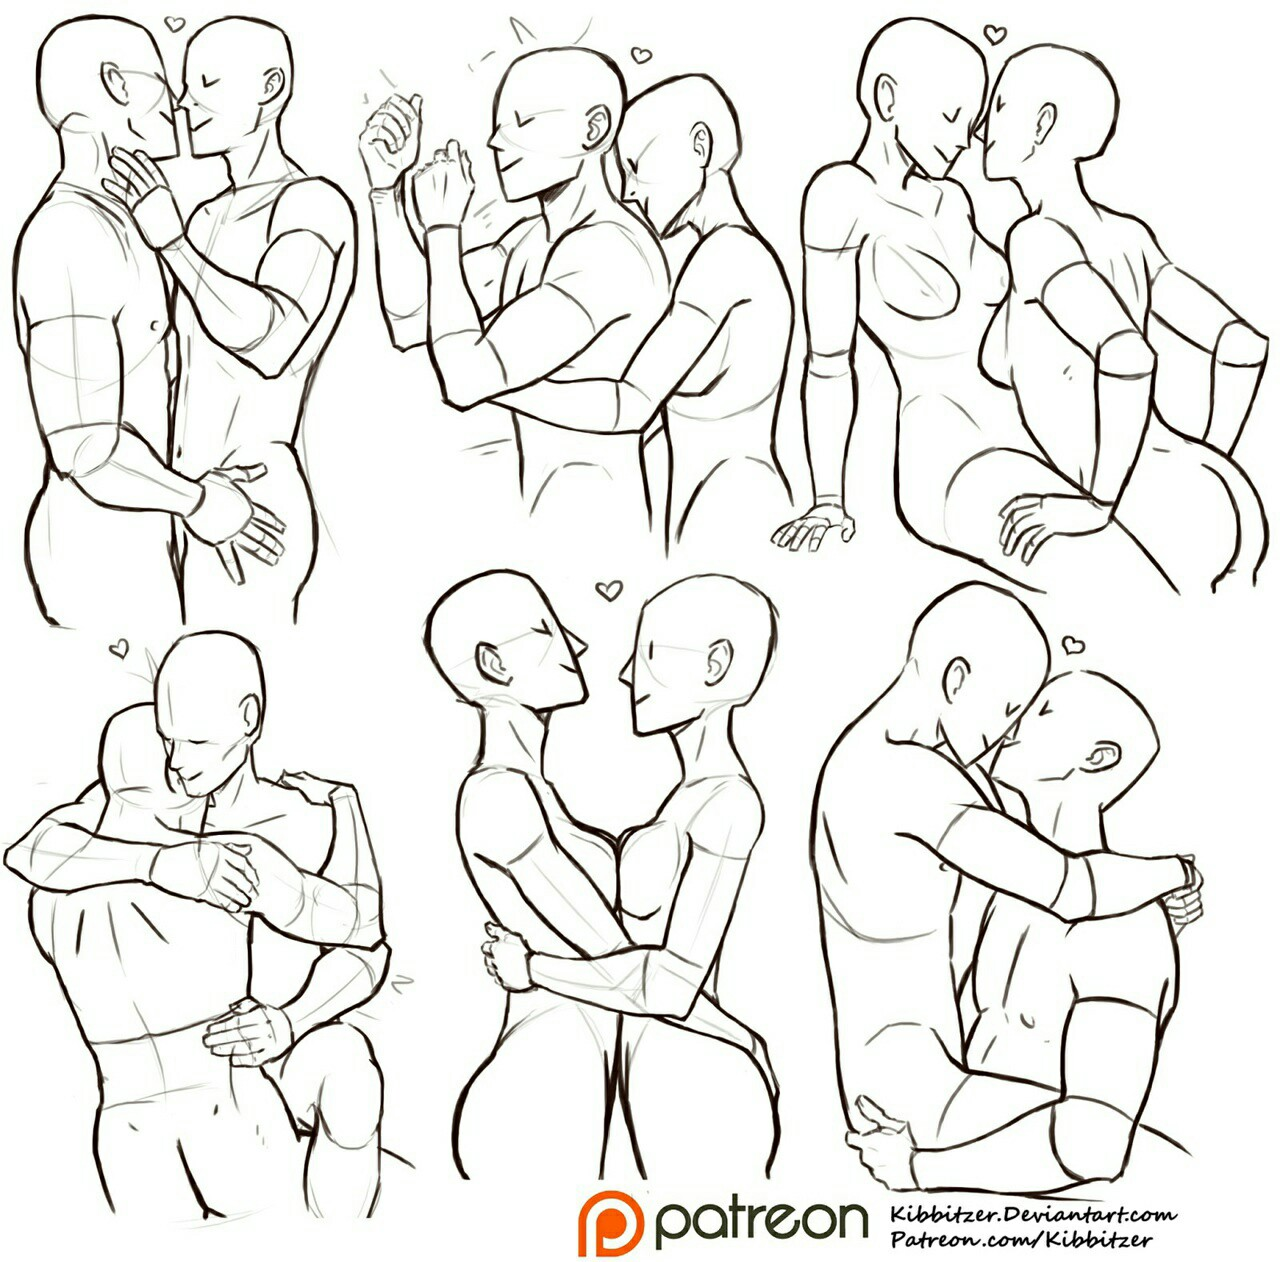 Drawn hug pose Find Lgbt Pose this Disfuntional